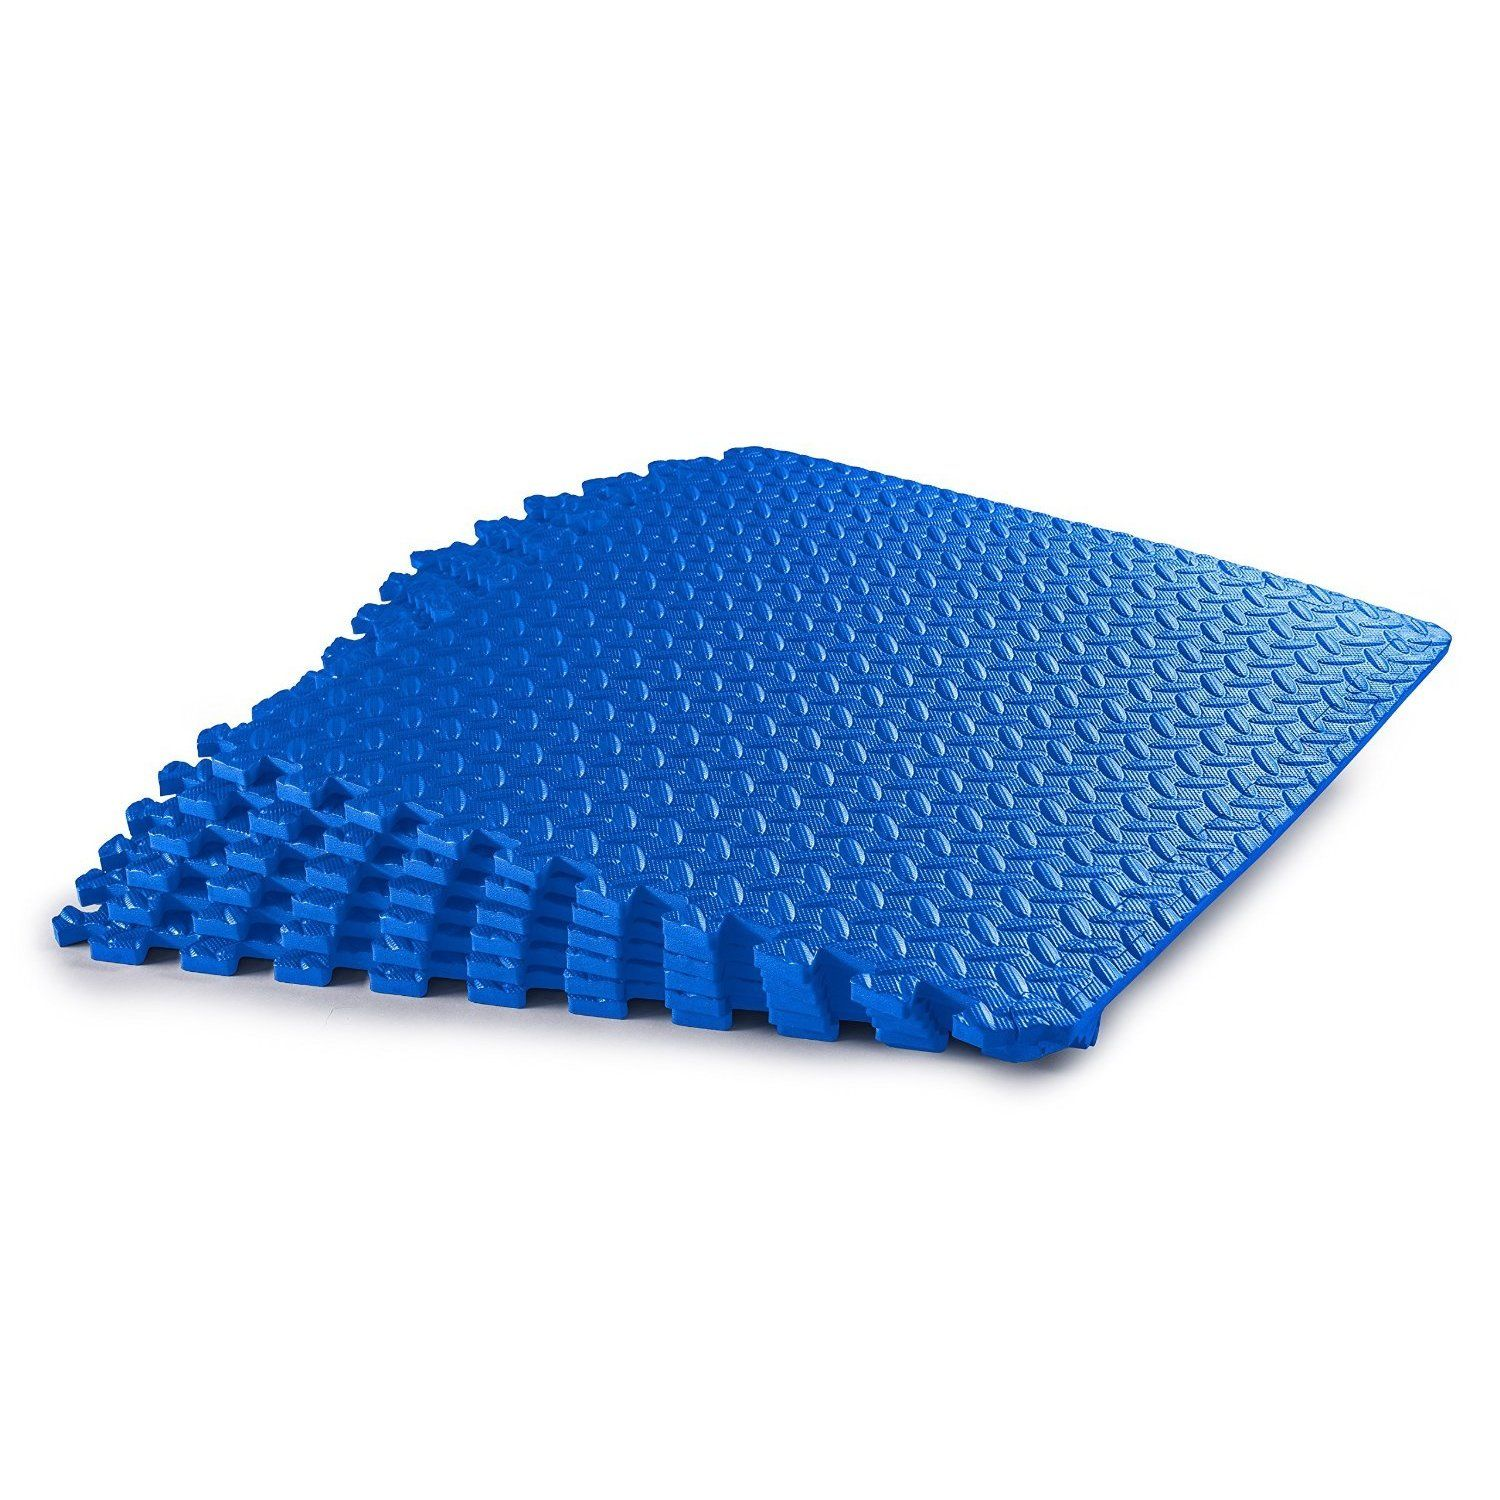 mat mats folding diy blue ip com gymnastics walmart yoga products aerobics stretching best exercise gym choice